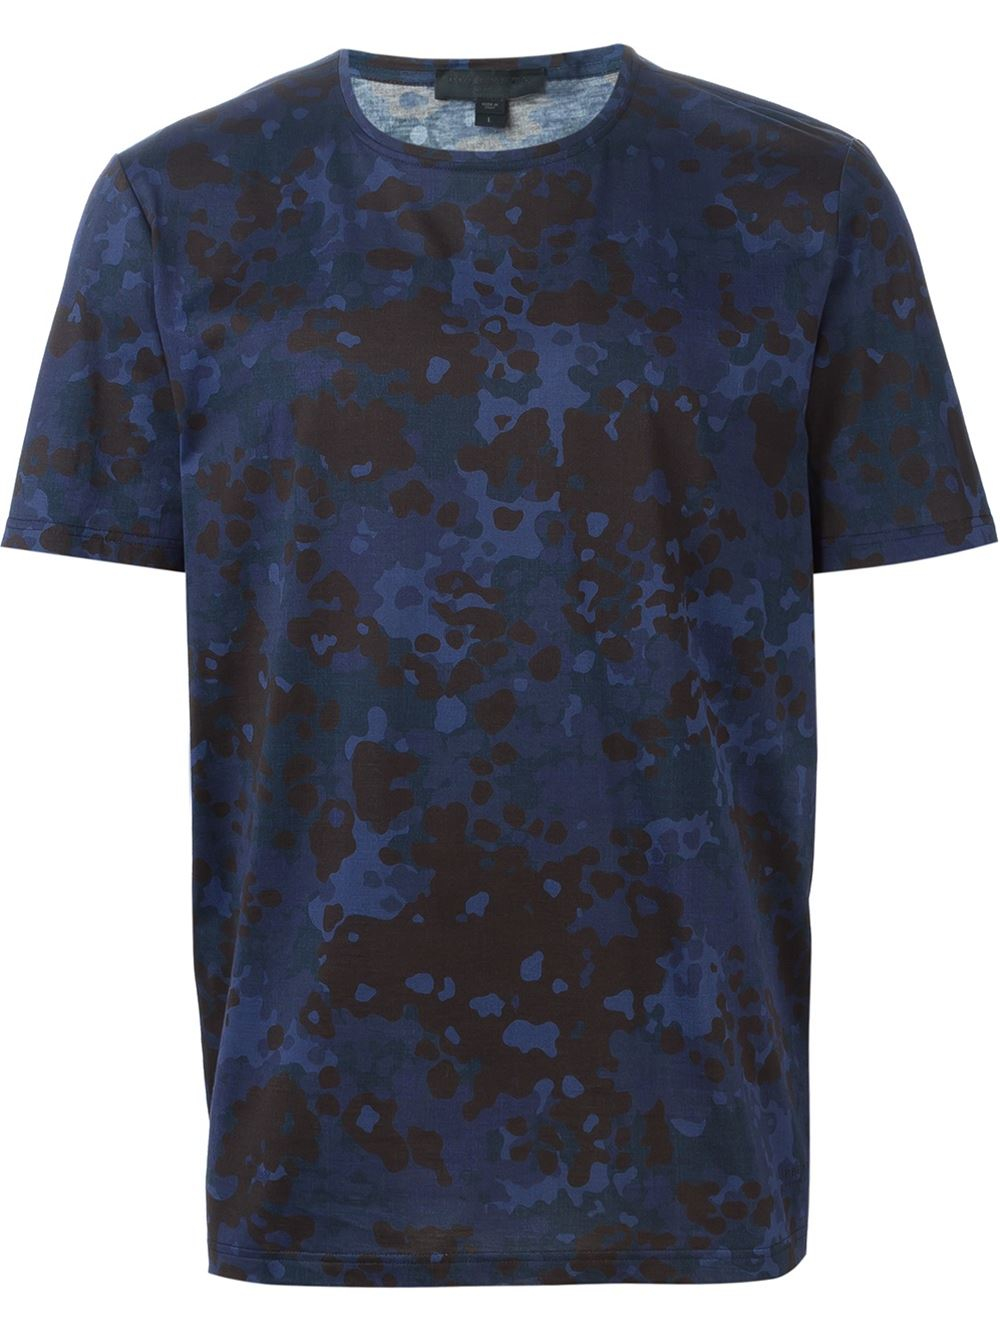 Burberry prorsum camouflage print t shirt in gray for men for Camo print t shirt